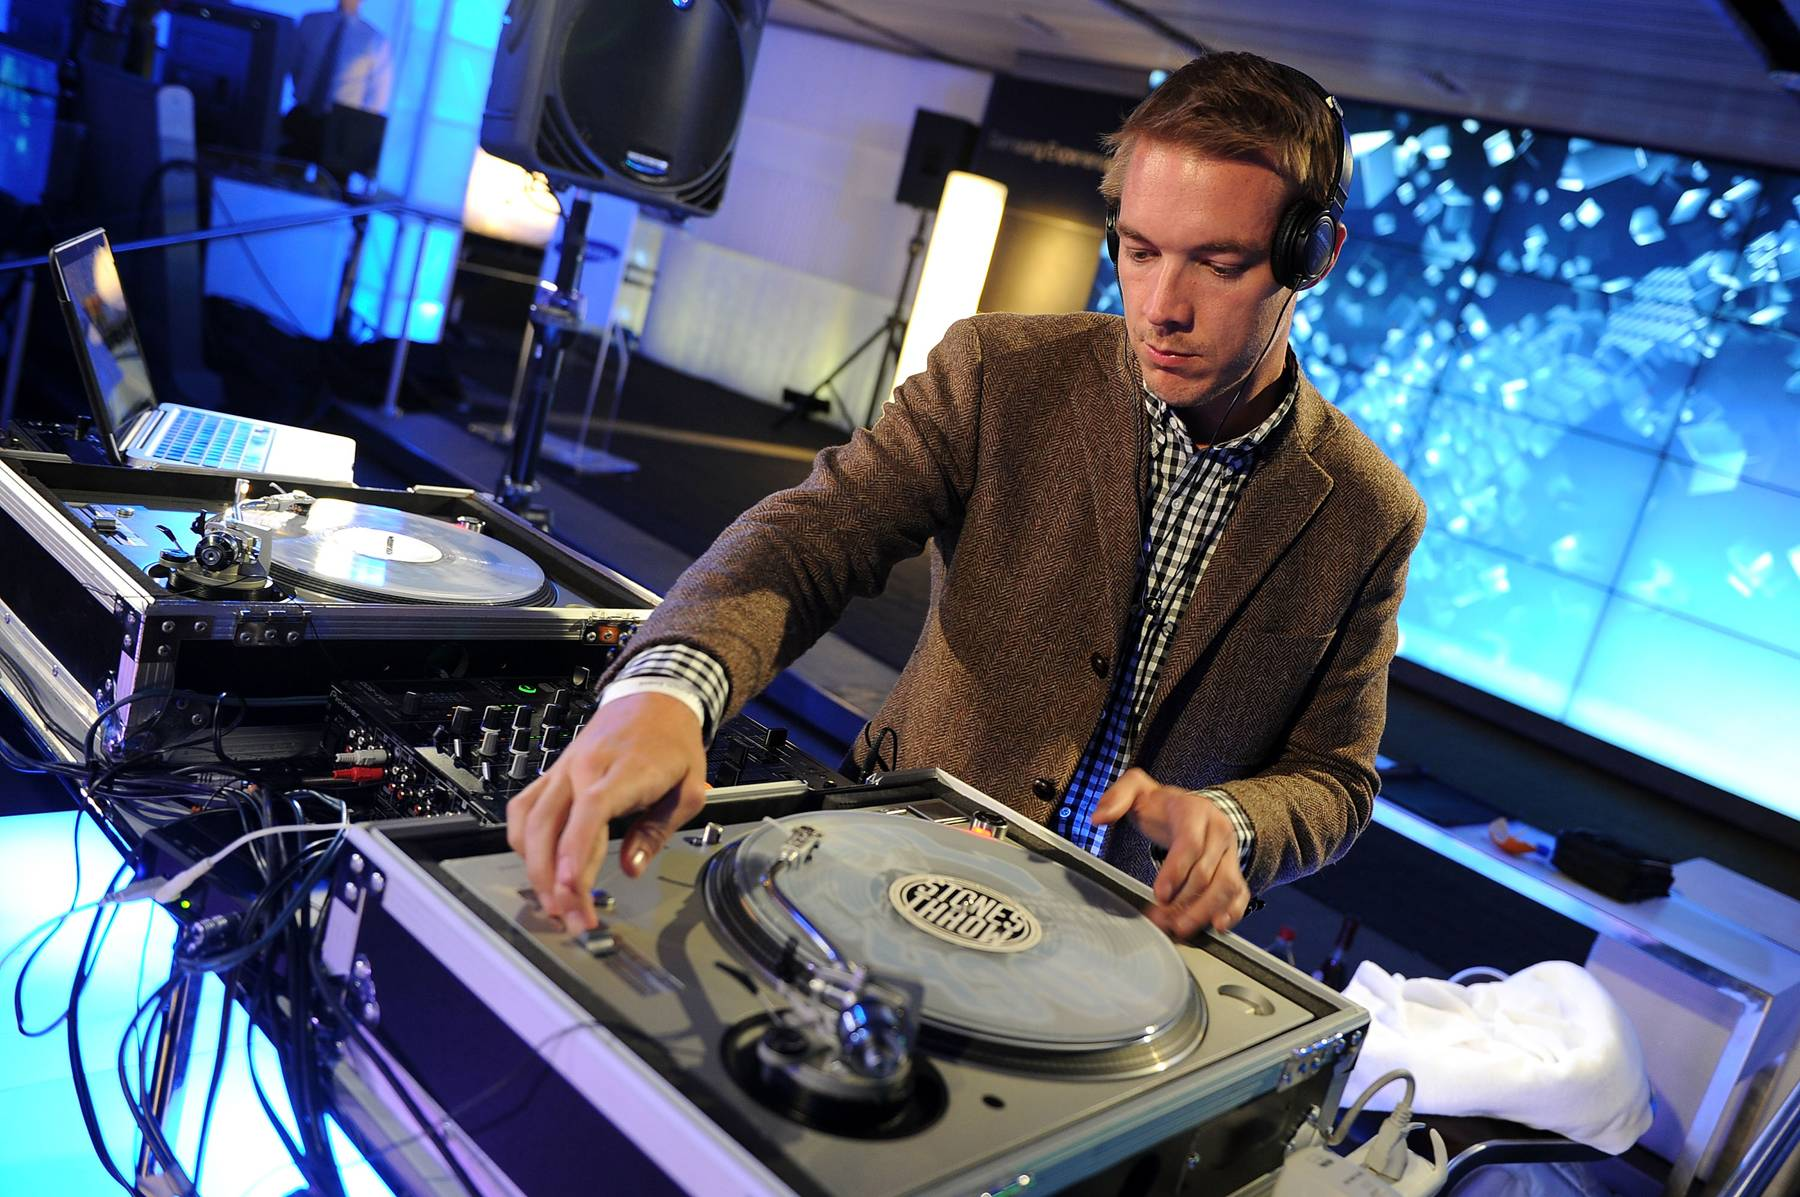 39. Diplo - Among the world's most in-demand party rockers, Diplo has led the recent line-blurring between dance music and hip hop. His mixtapes launched the careers of M.I.A. and Santigold, and his production bolstered hits by Chris Brown, Usher, Beyonc? and more.  (Photo: Theo Wargo/Getty Images for Samsung)